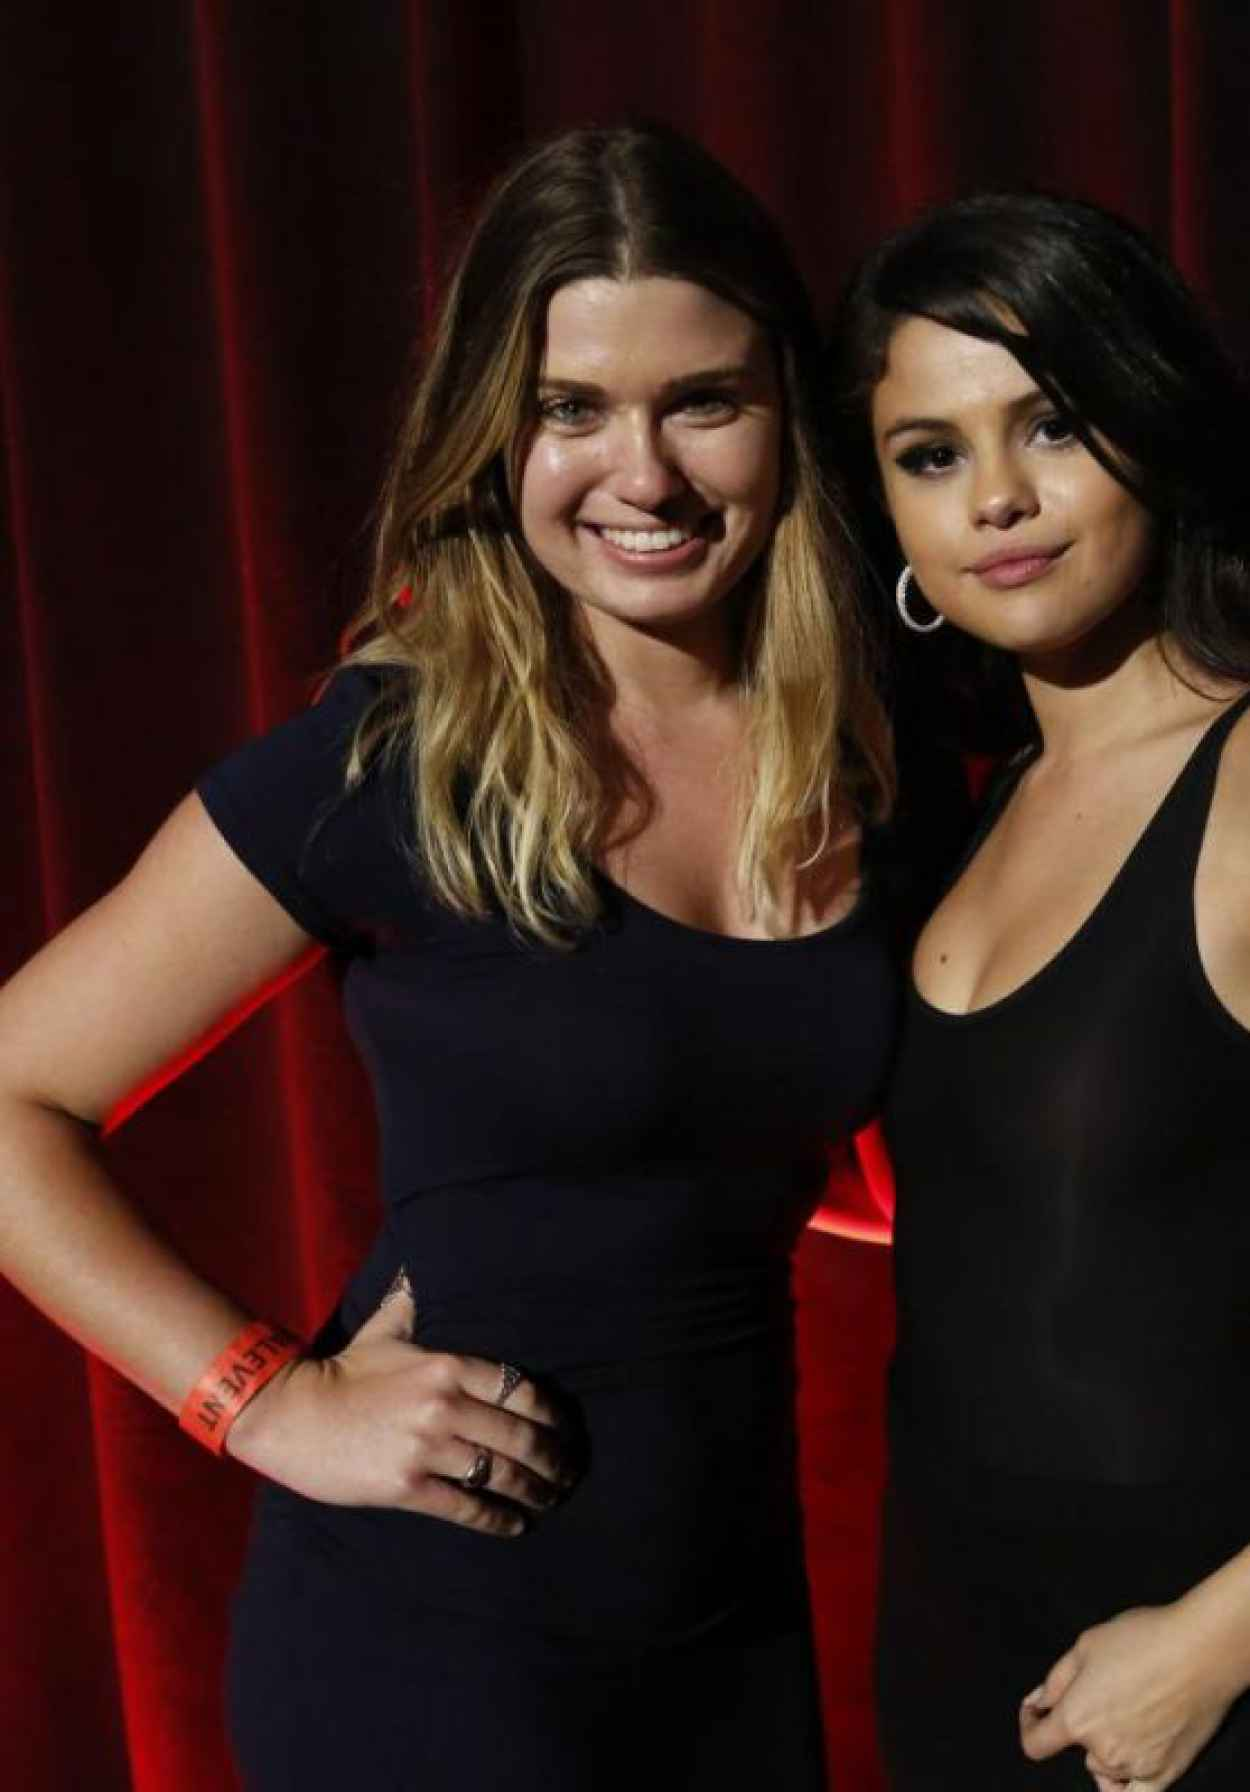 Selena gomez revival event fan meet greet in los angeles selena gomez revival event fan meet greet in los angeles m4hsunfo Image collections